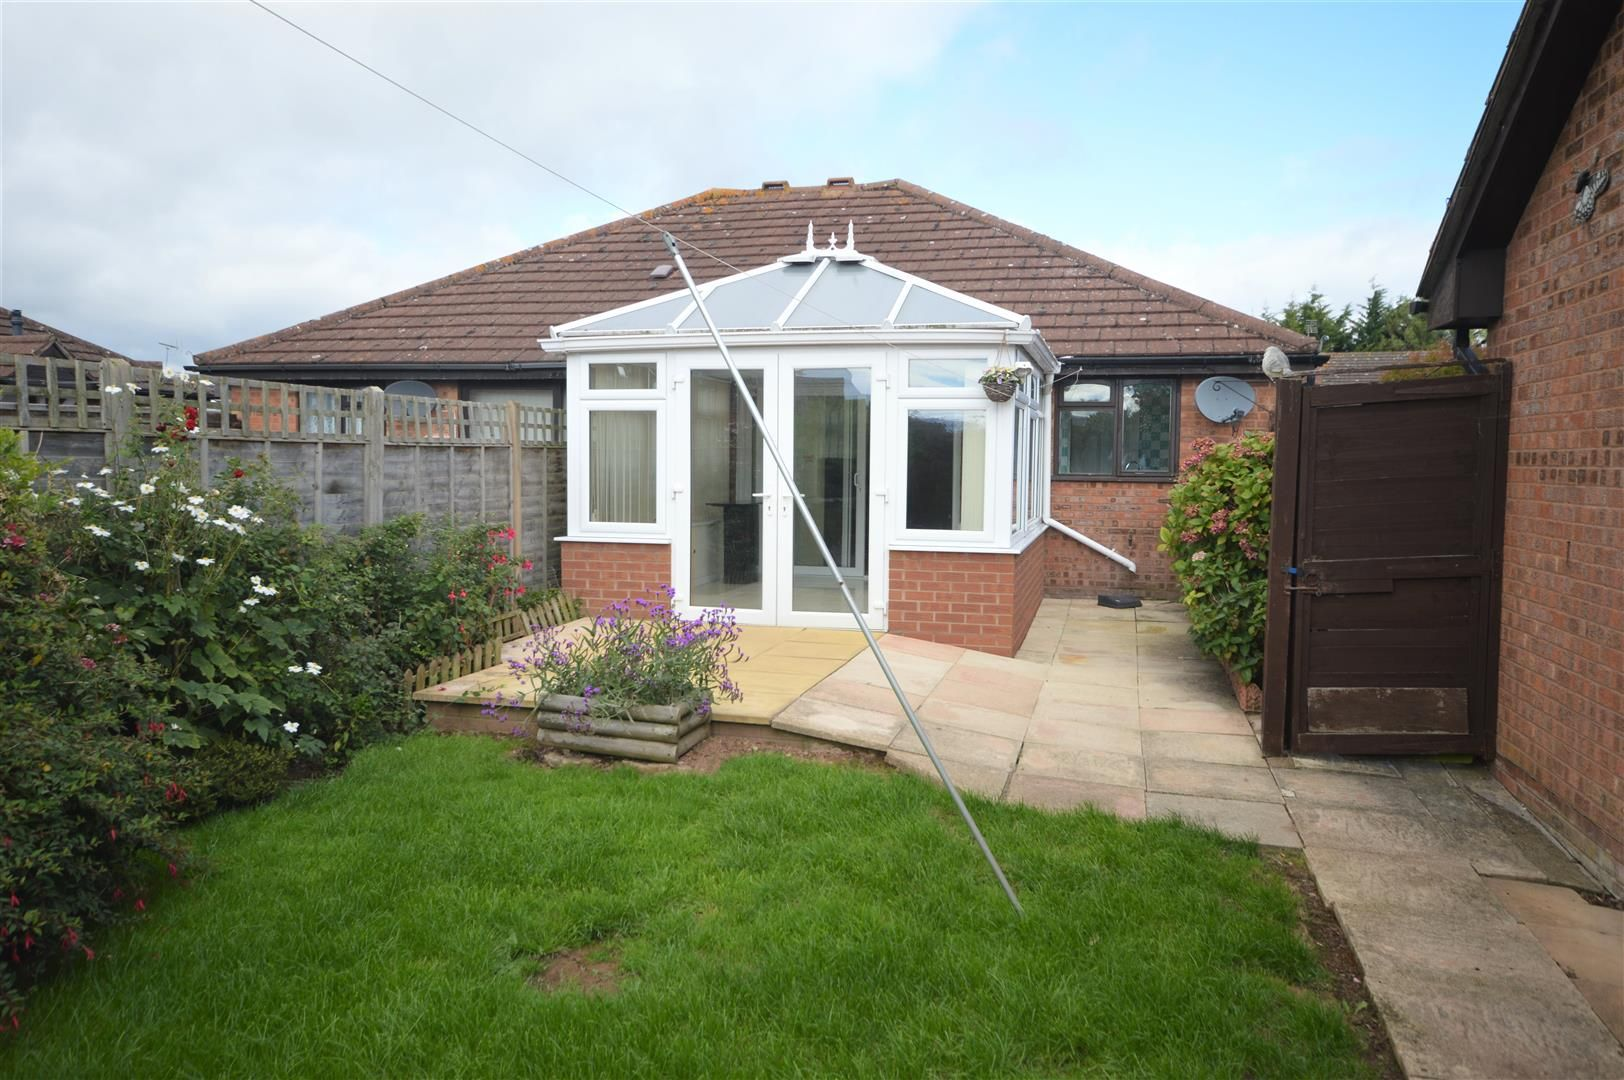 2 bed semi-detached bungalow for sale in Leominster 9